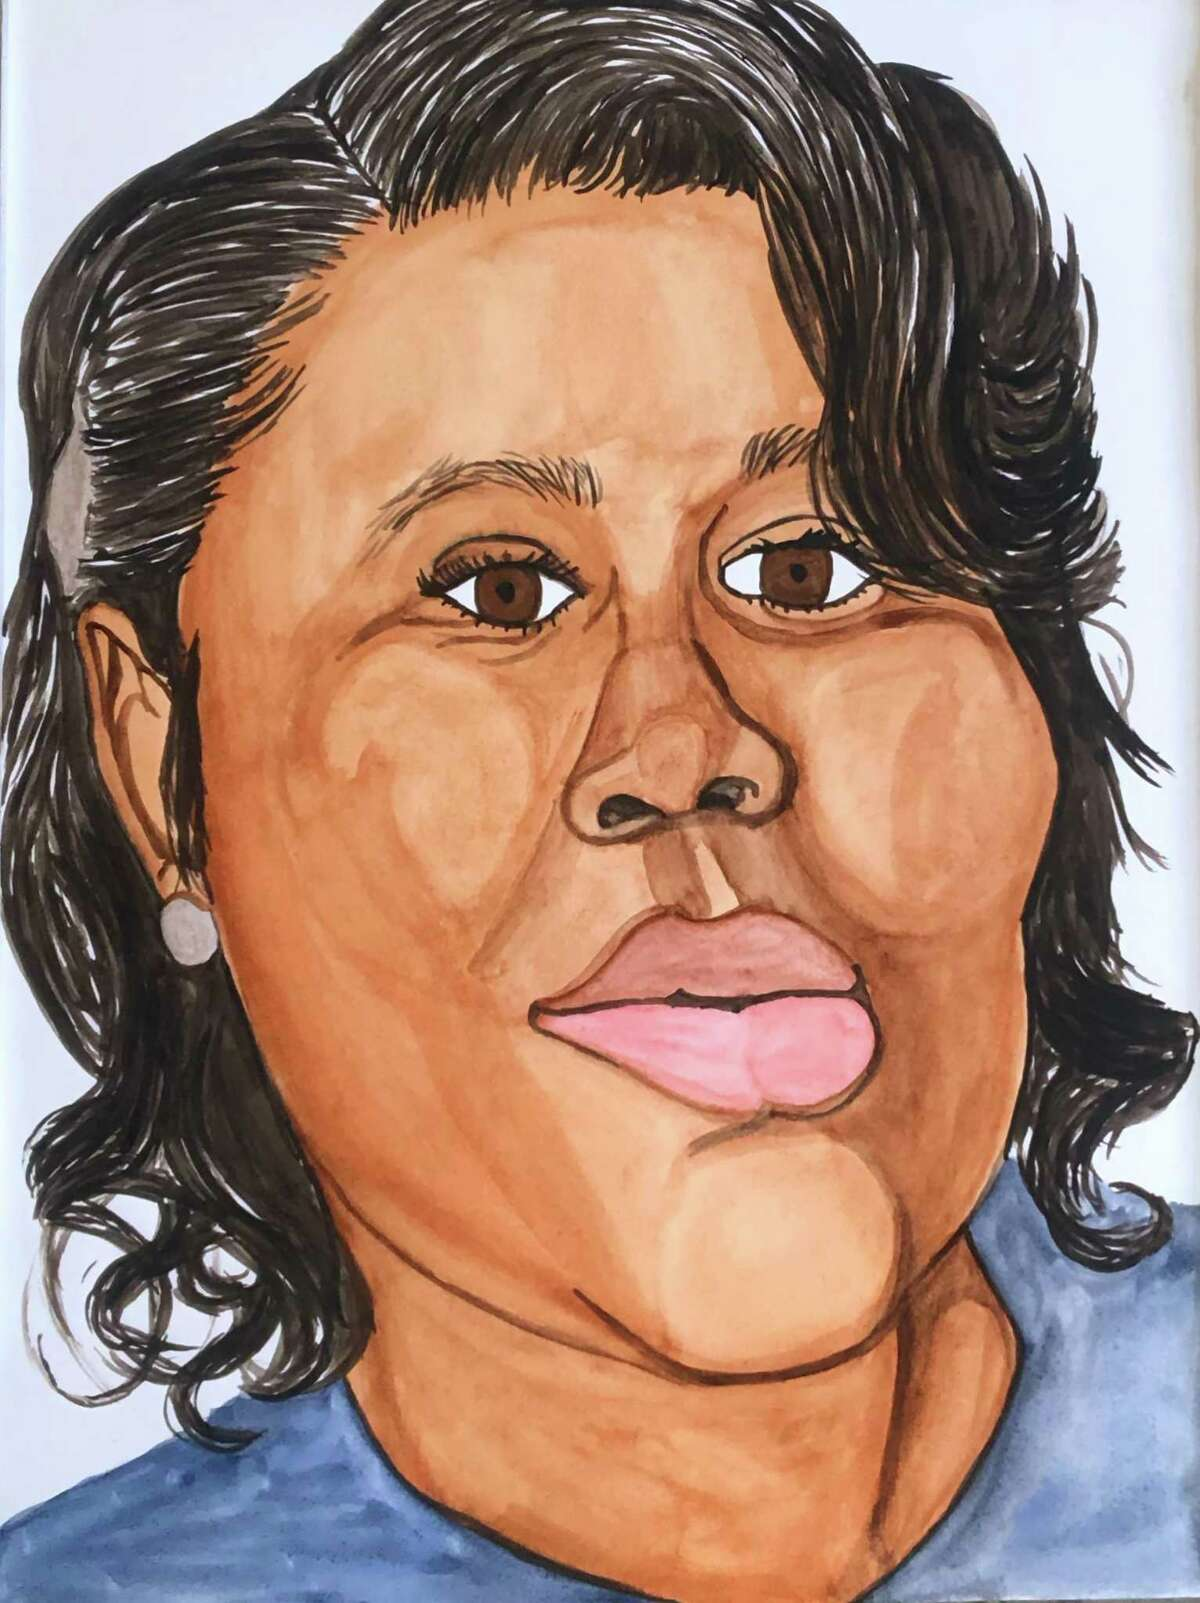 Breonna Taylor, a 26-year-old emergency medical technician shot 8 times by Louisville Police who entered her apartment without knocking, 2020. This is one of the portraits that will be included in the Aldrich Contemporary Art Museum's exhibit